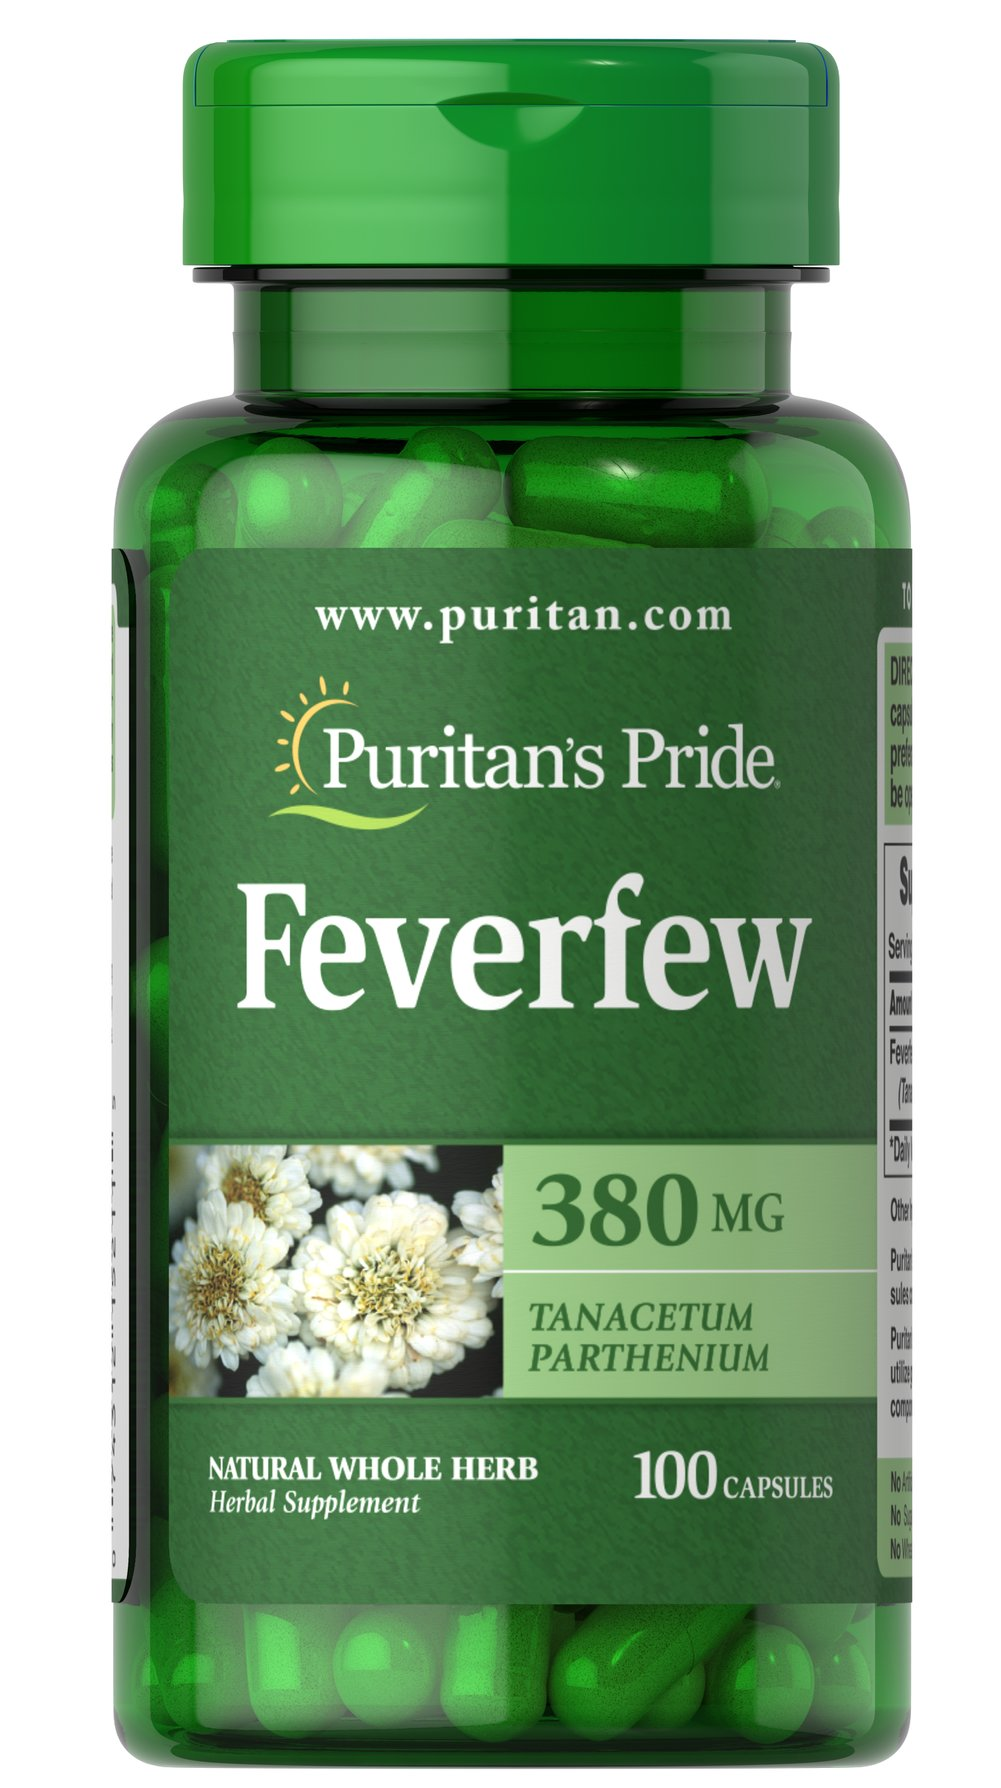 Feverfew 380 mg <p>Feverfew (Tanacetum parthenium) is traditionally used by individuals with hectic lifestyles.**<br /><br />Puritan's Pride's preservative-free gelatin capsules contain pure milled herb powder.<br /><br />Puritan's Pride's Natural Whole Herb products utilize ground plant parts to provide the natural components found in nature.</p><p></p> 100 Capsules 380 mg $9.99